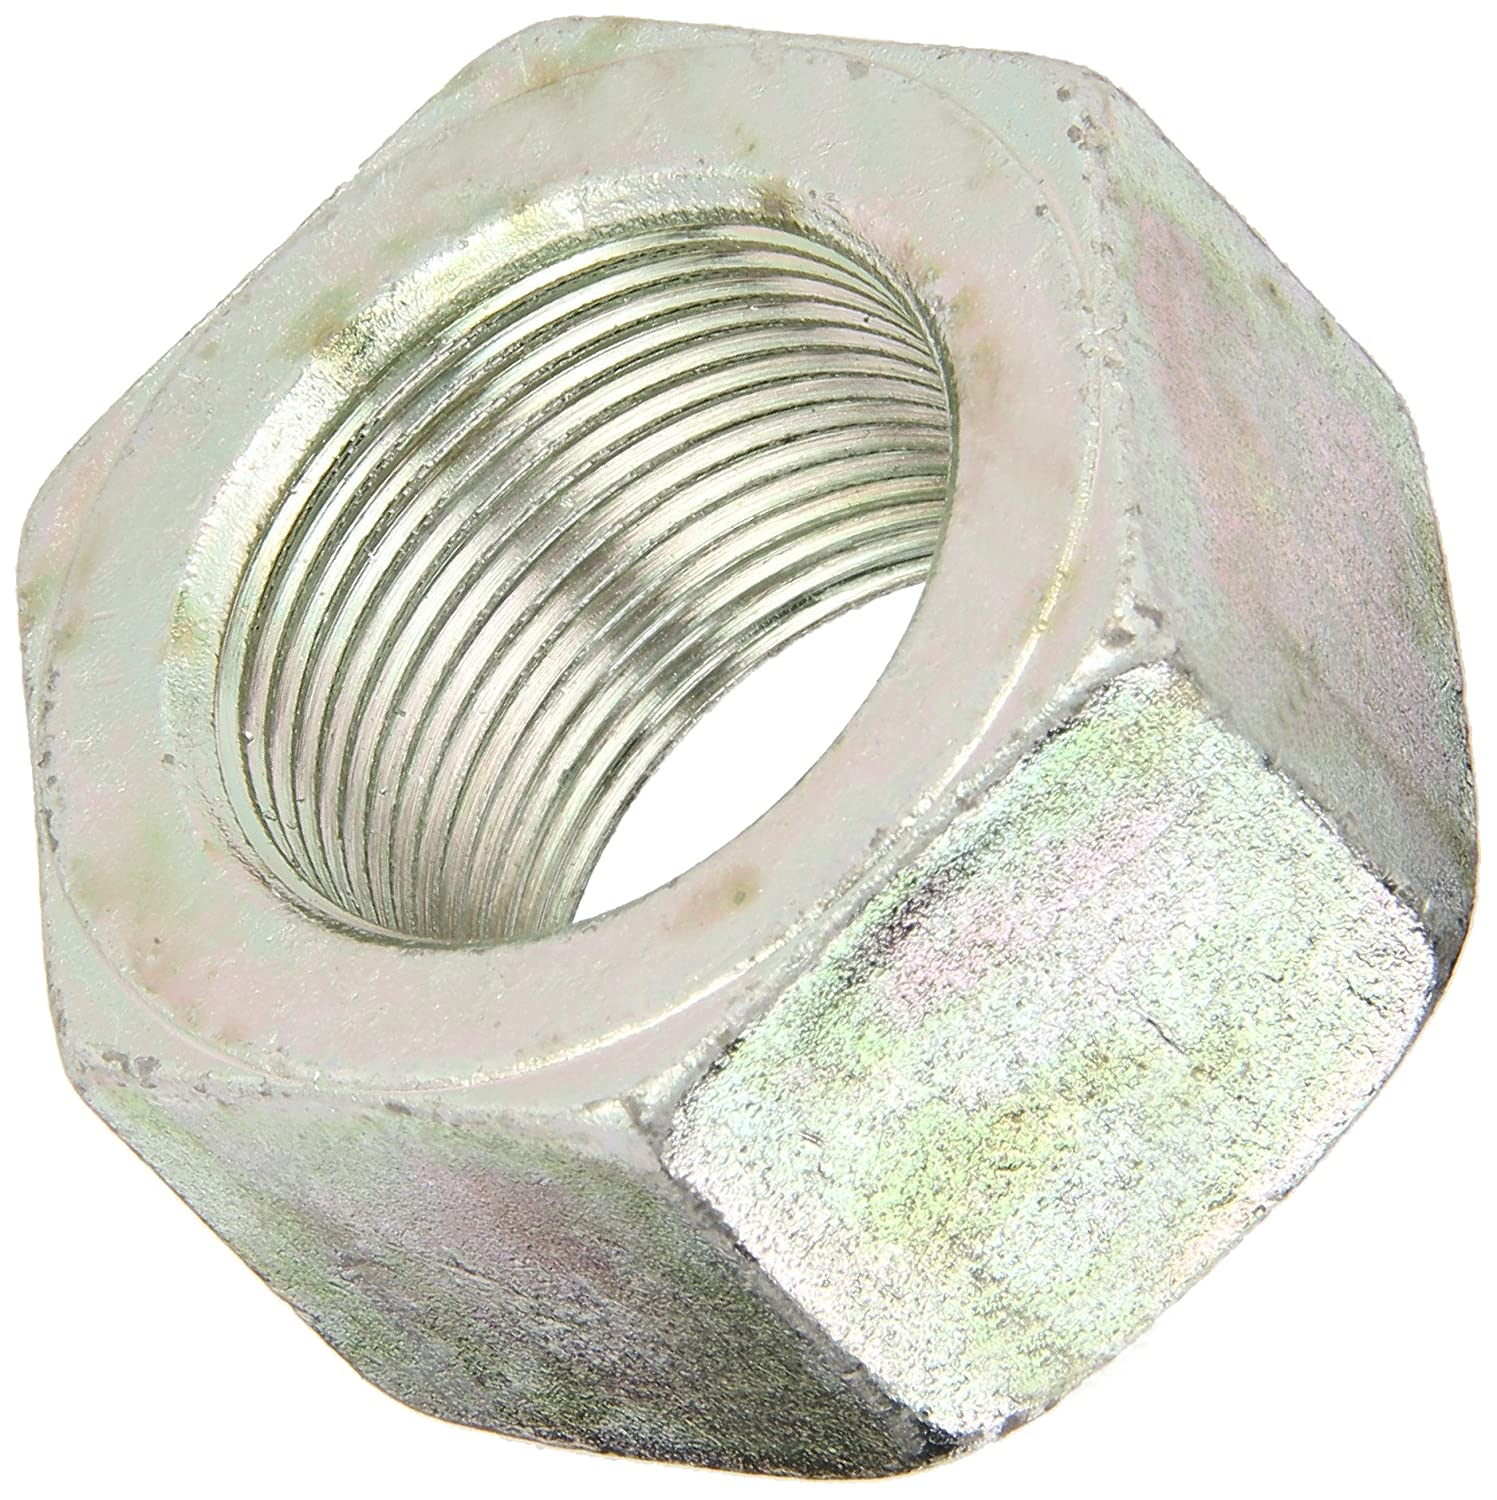 Steel Hex Nut Pack of 100 ASME B18.2.2 1//4-28 Thread Size Ultra Coat Finish Grade 8 Pack of 100 1//4-28 Thread Size 7//16 Width Across Flats 7//32 Thick 7//32 Thick Small Parts 7//16 Width Across Flats